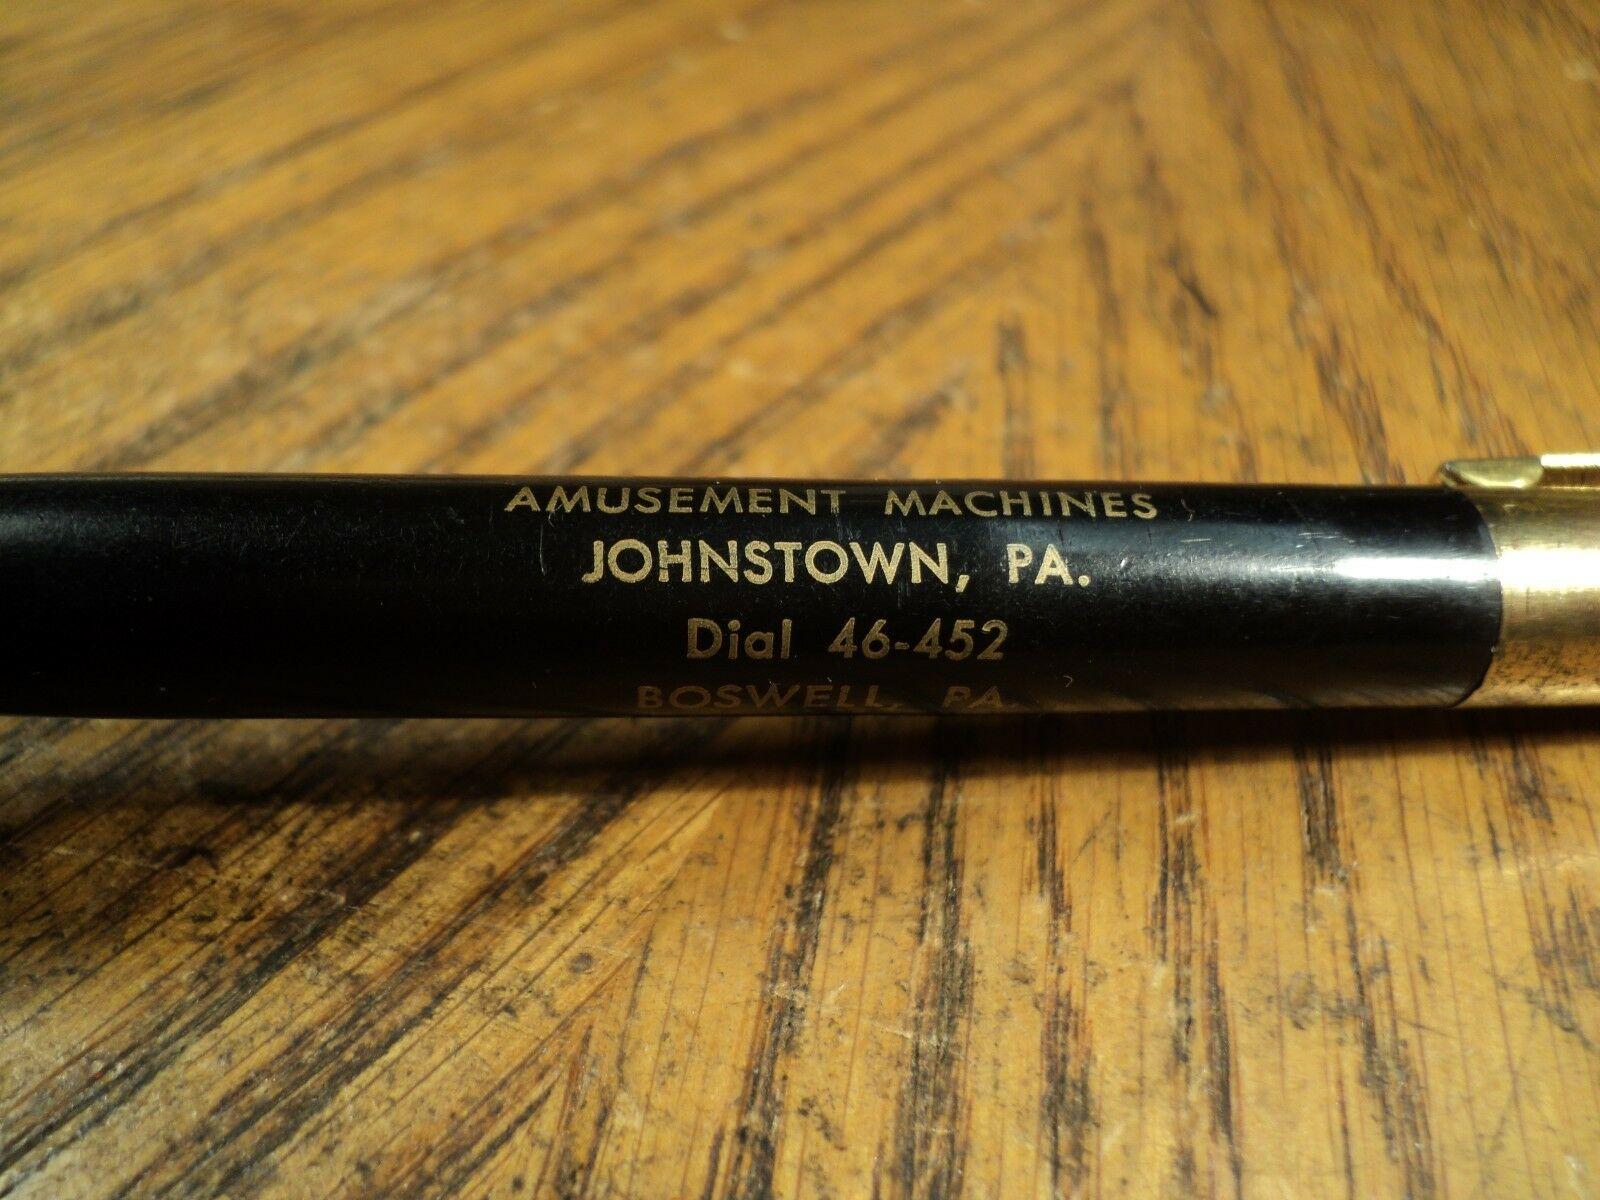 Vintage Pa Rougeipoint Portemine Sheftic Amusements Johnstown Pa - Boswell Pa Vintage 3f6231